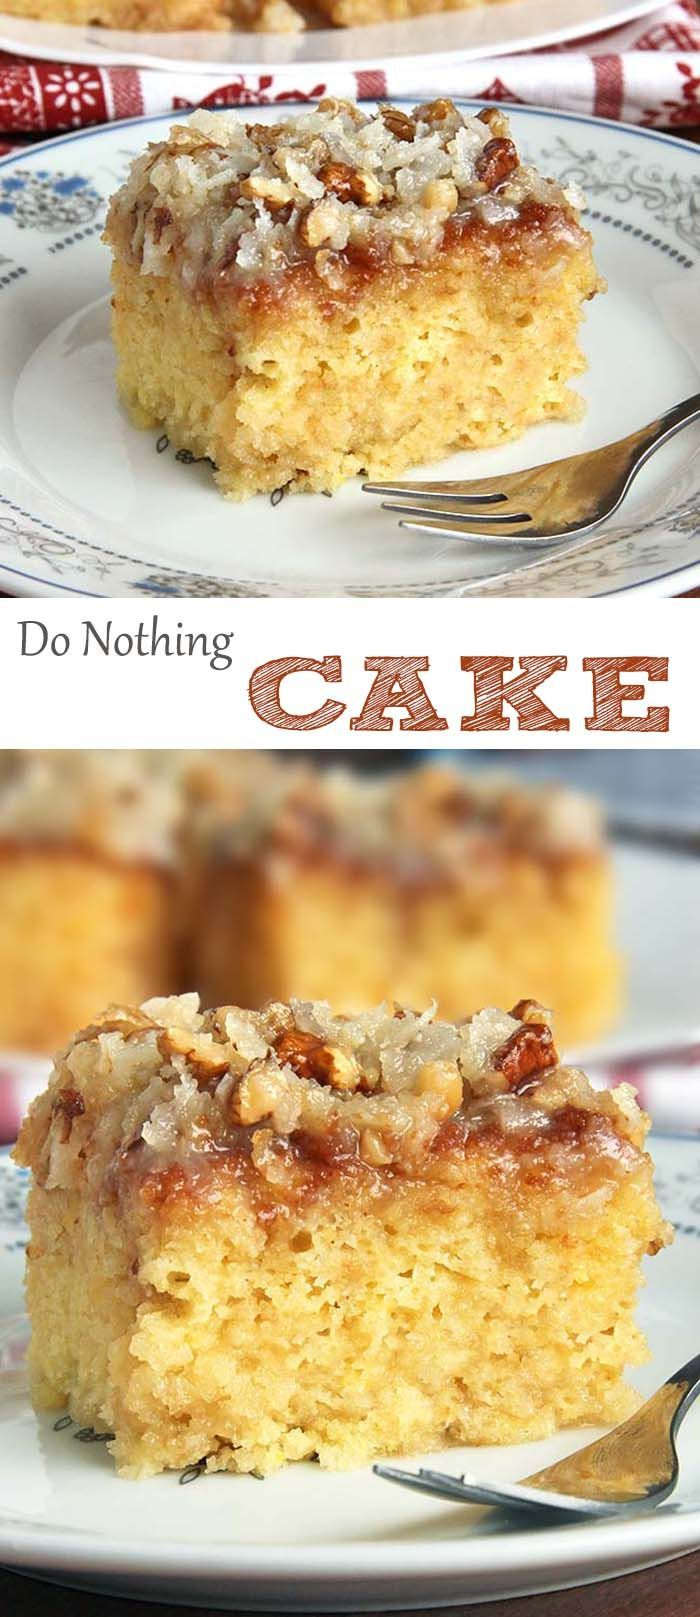 This cake is not only made from scratch but so ridiculously easy to make! ....